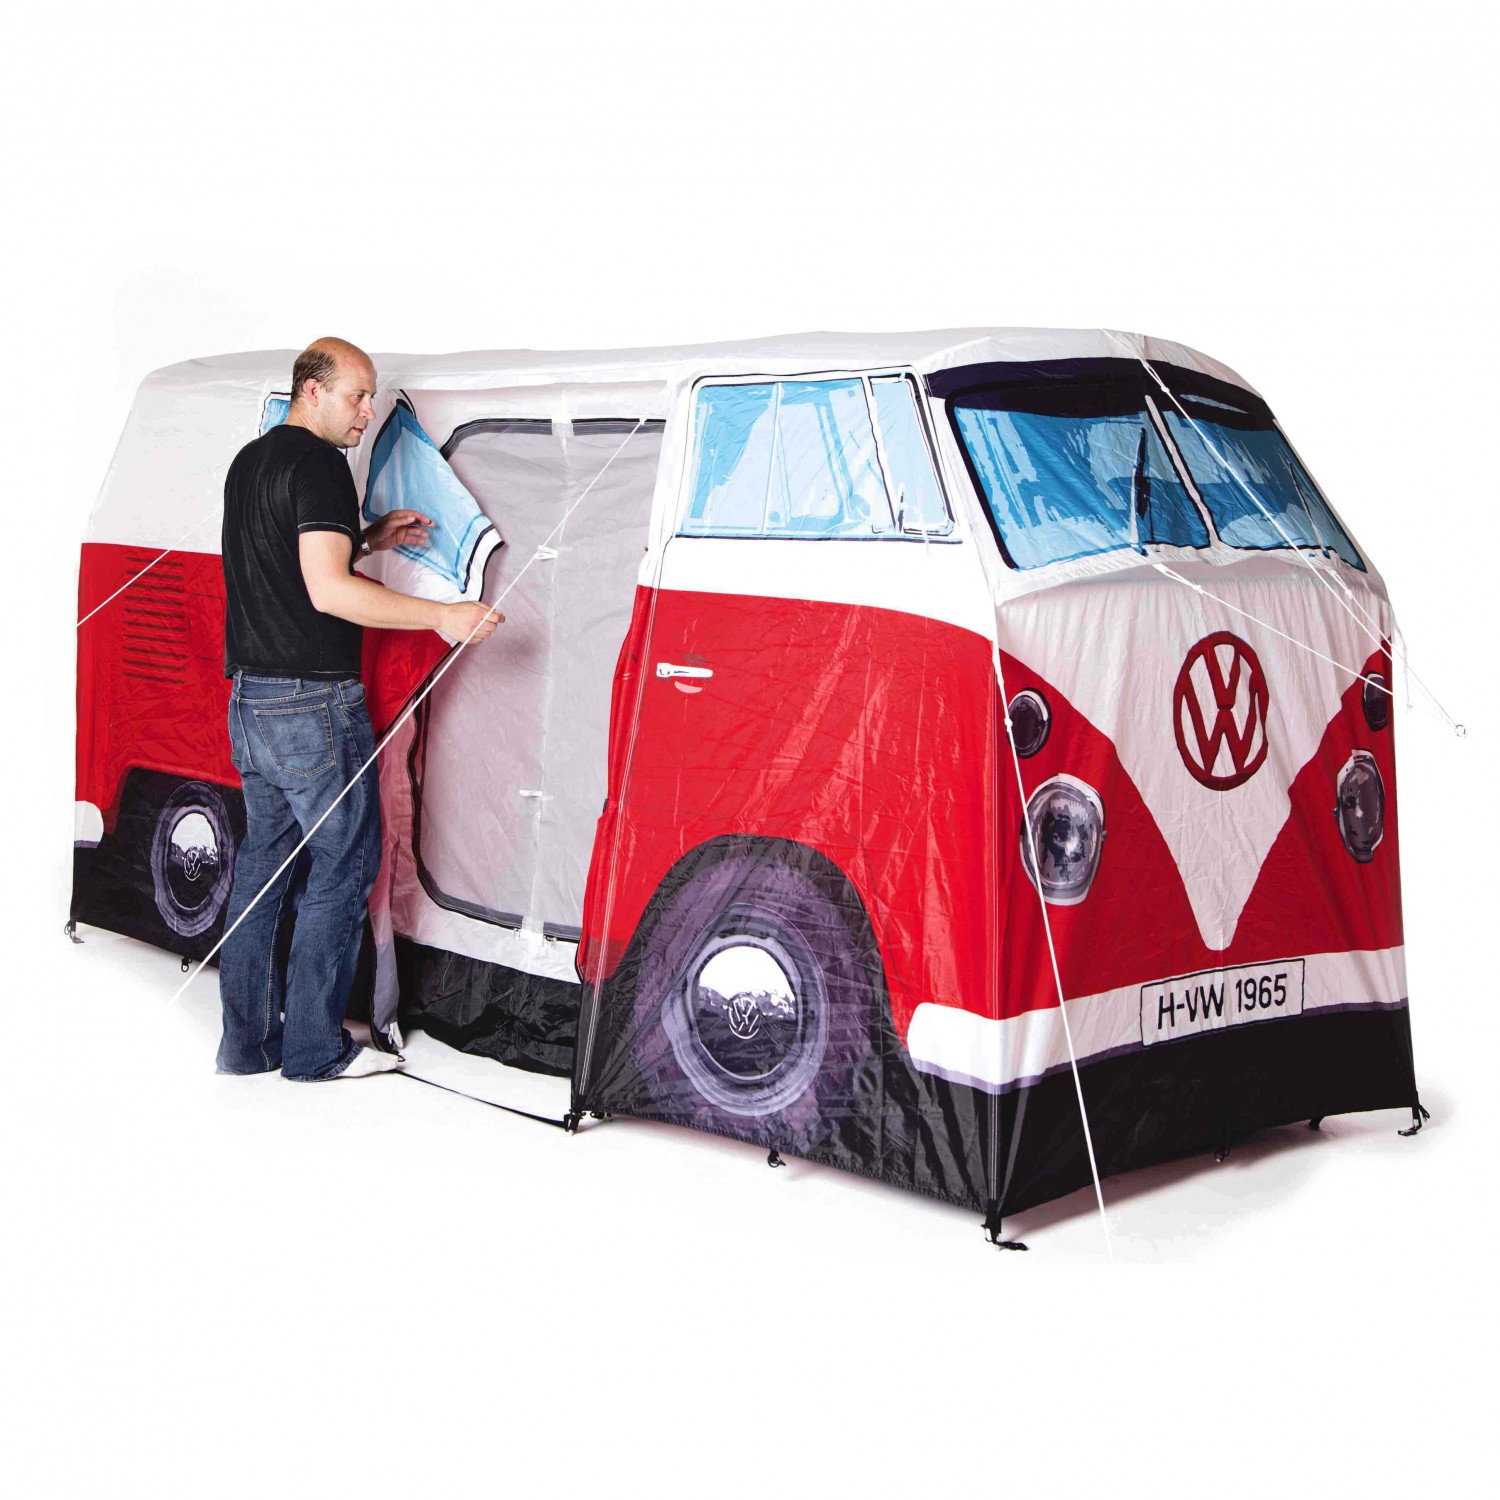 the monster factory vw camper van tent air bus zelt. Black Bedroom Furniture Sets. Home Design Ideas